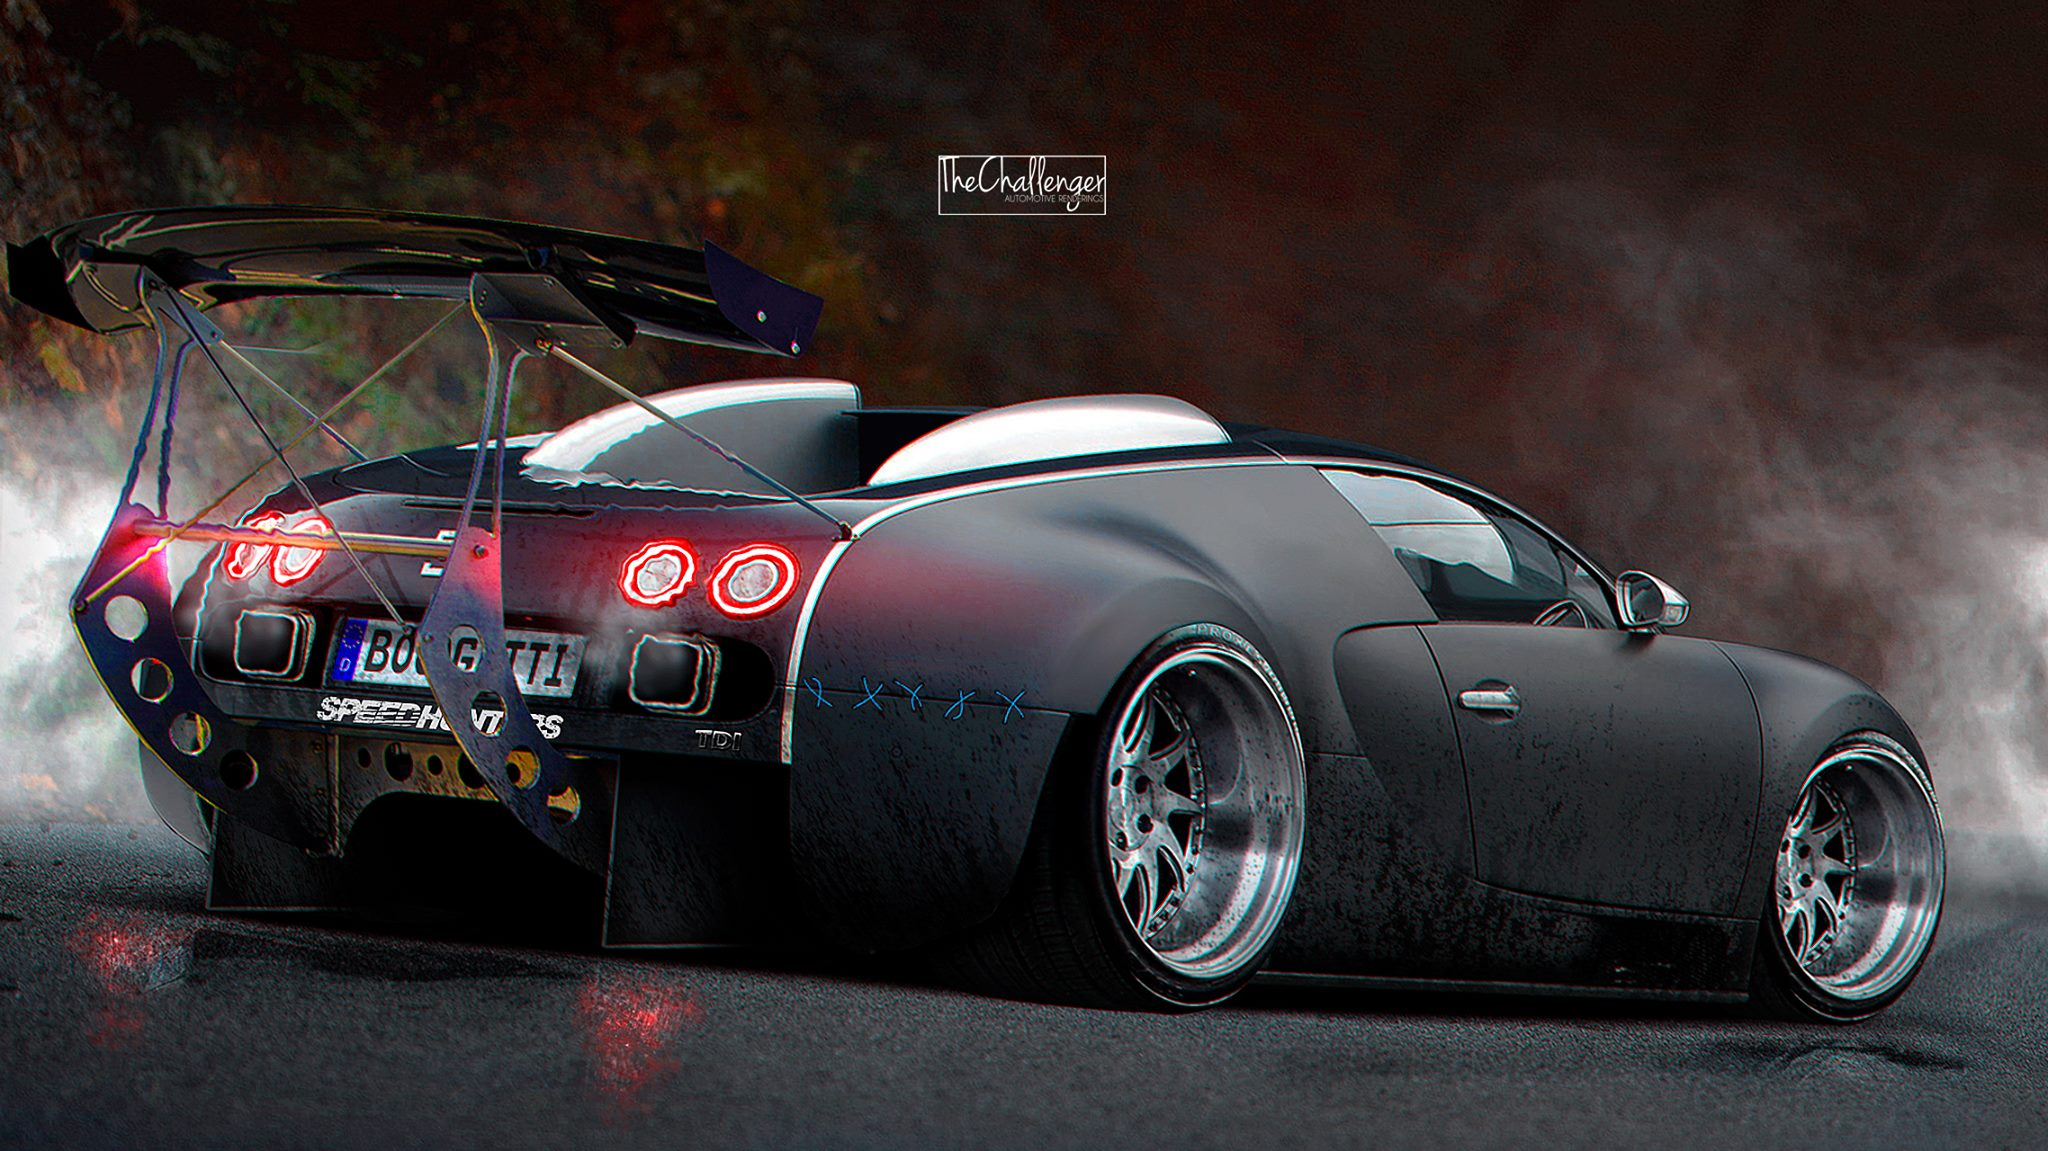 Wallpapers Oakley 3d Bugatti Veyron Gets Stanced Luckily It S A Rendering